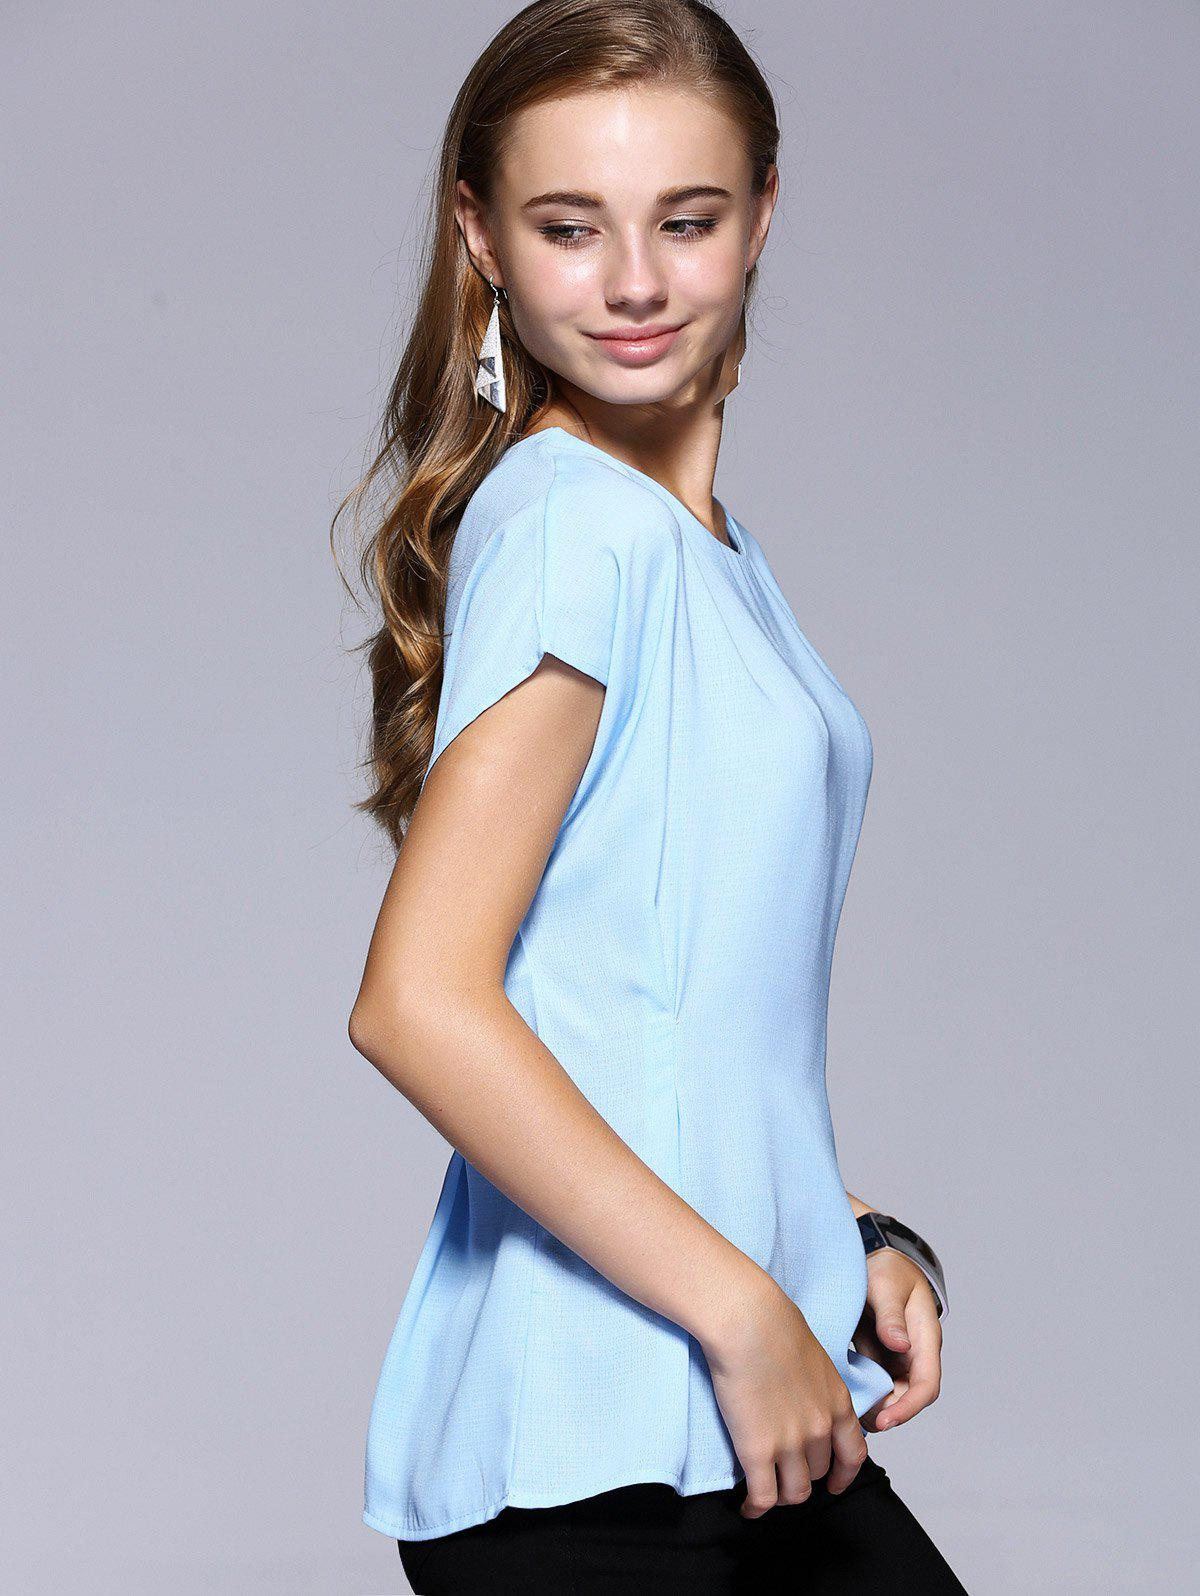 Romantic Date Side Bowknot Embellished Waisted Blouse - LIGHT BLUE XL